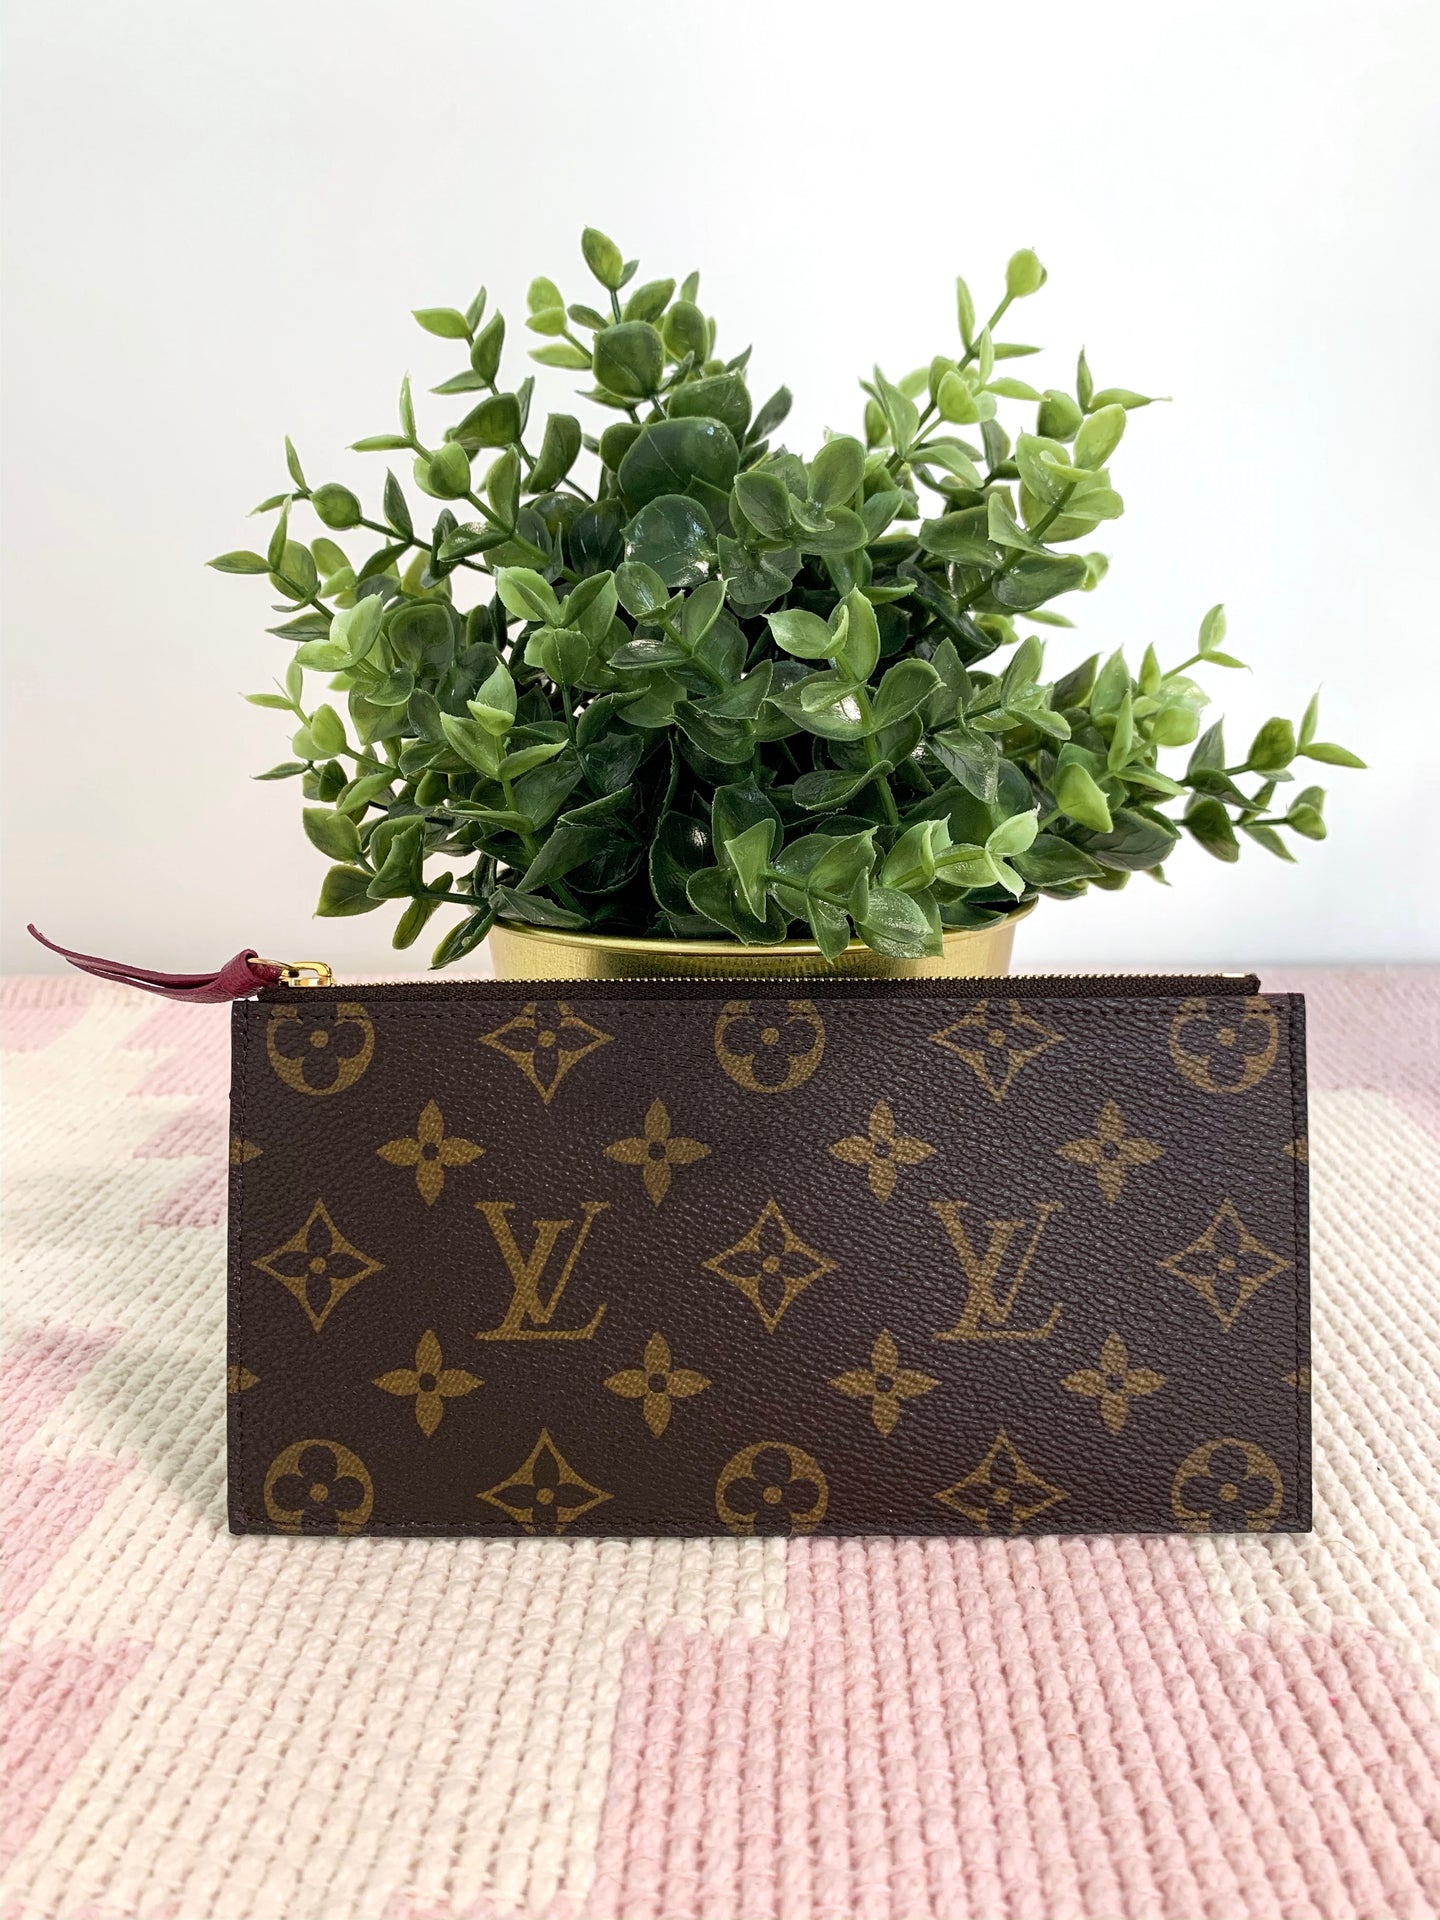 Louis Vuitton Monogram with Magenta Felicie Insert